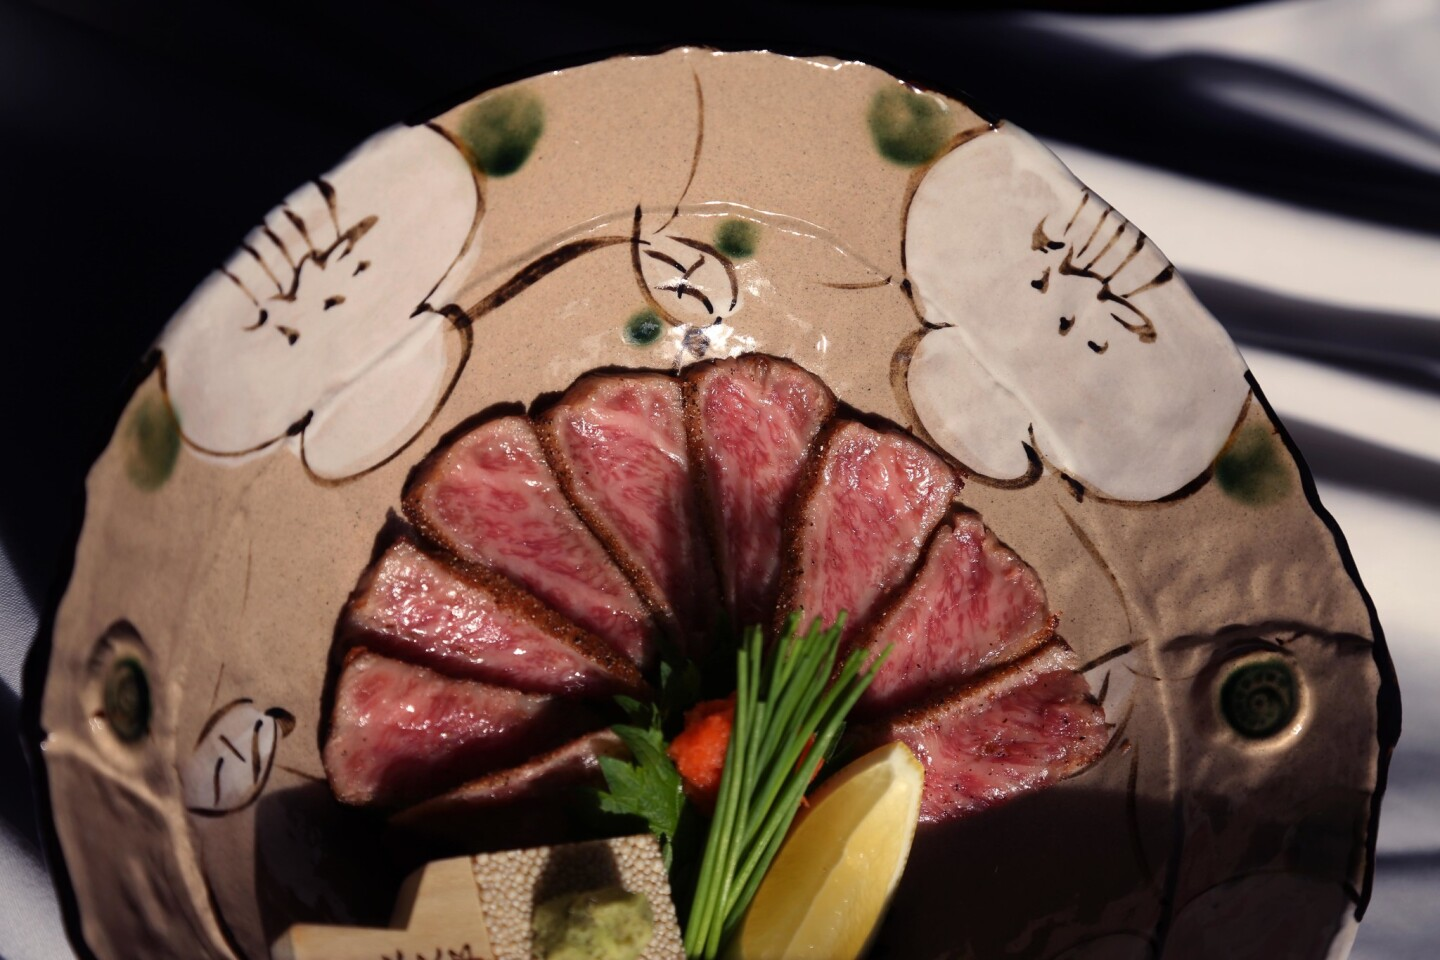 Wagyu beef tataki with fresh wasabi. The meat is lightly seared, marinated and sliced thinly, similar to sashimi.